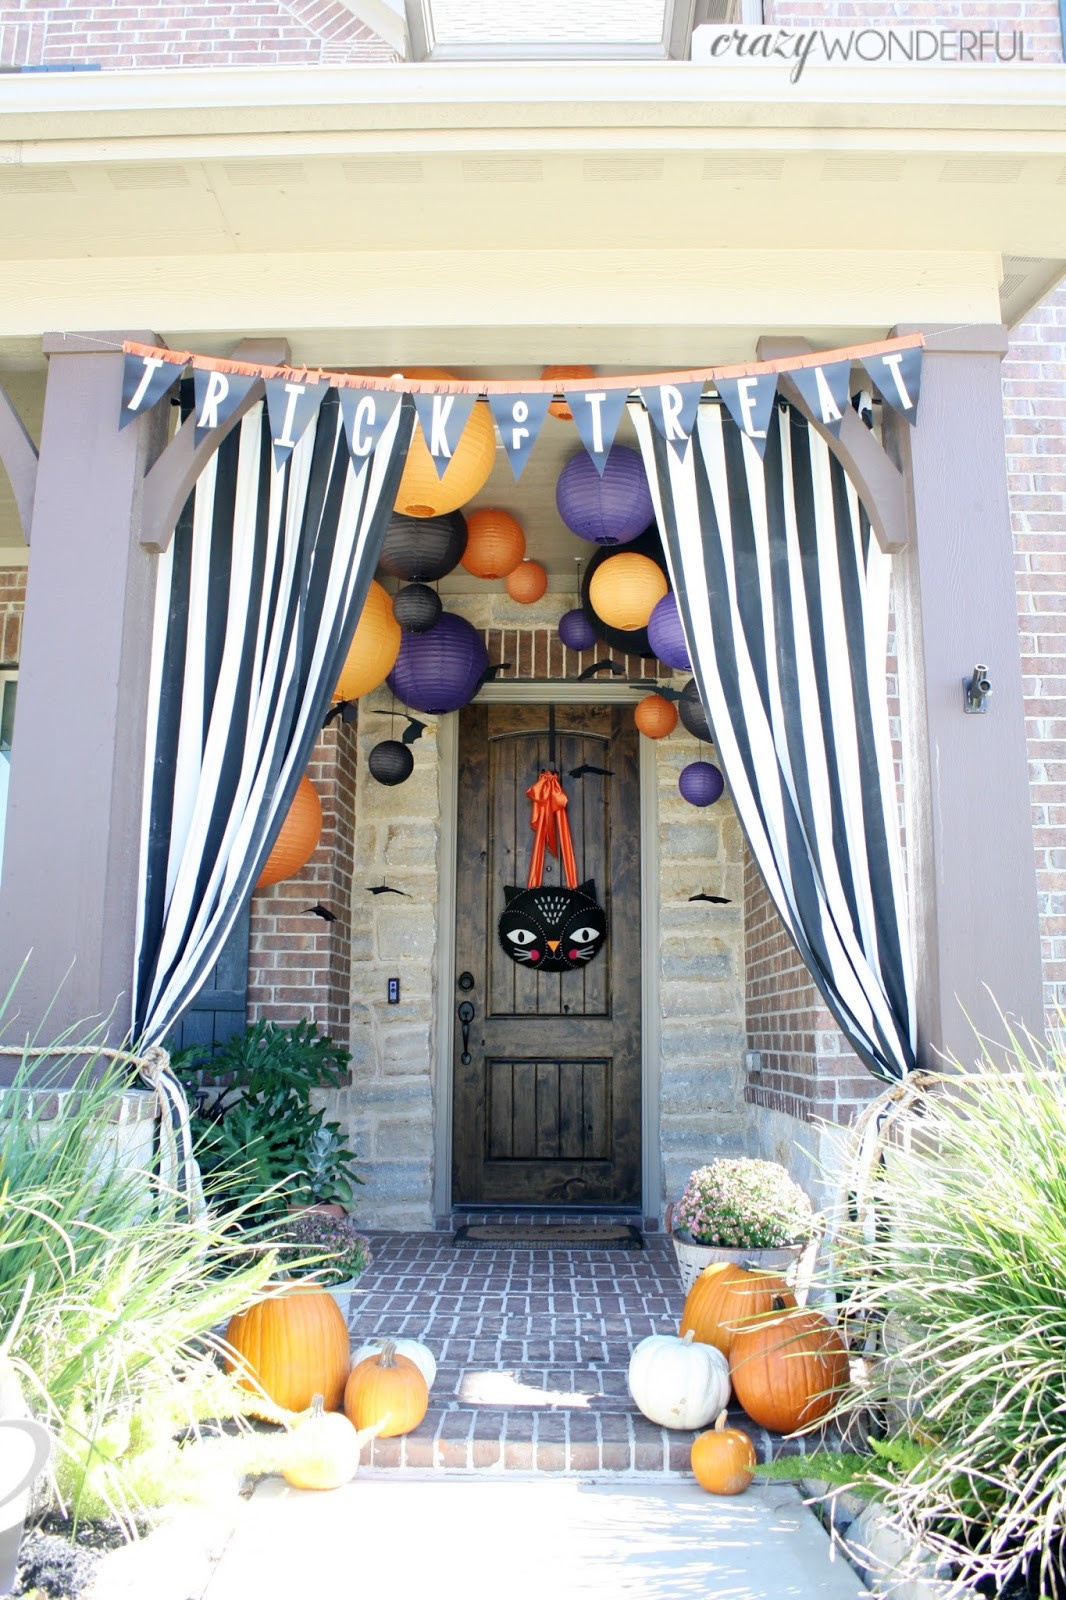 Porch Decorated For Halloween  halloween porch decorations Crazy Wonderful